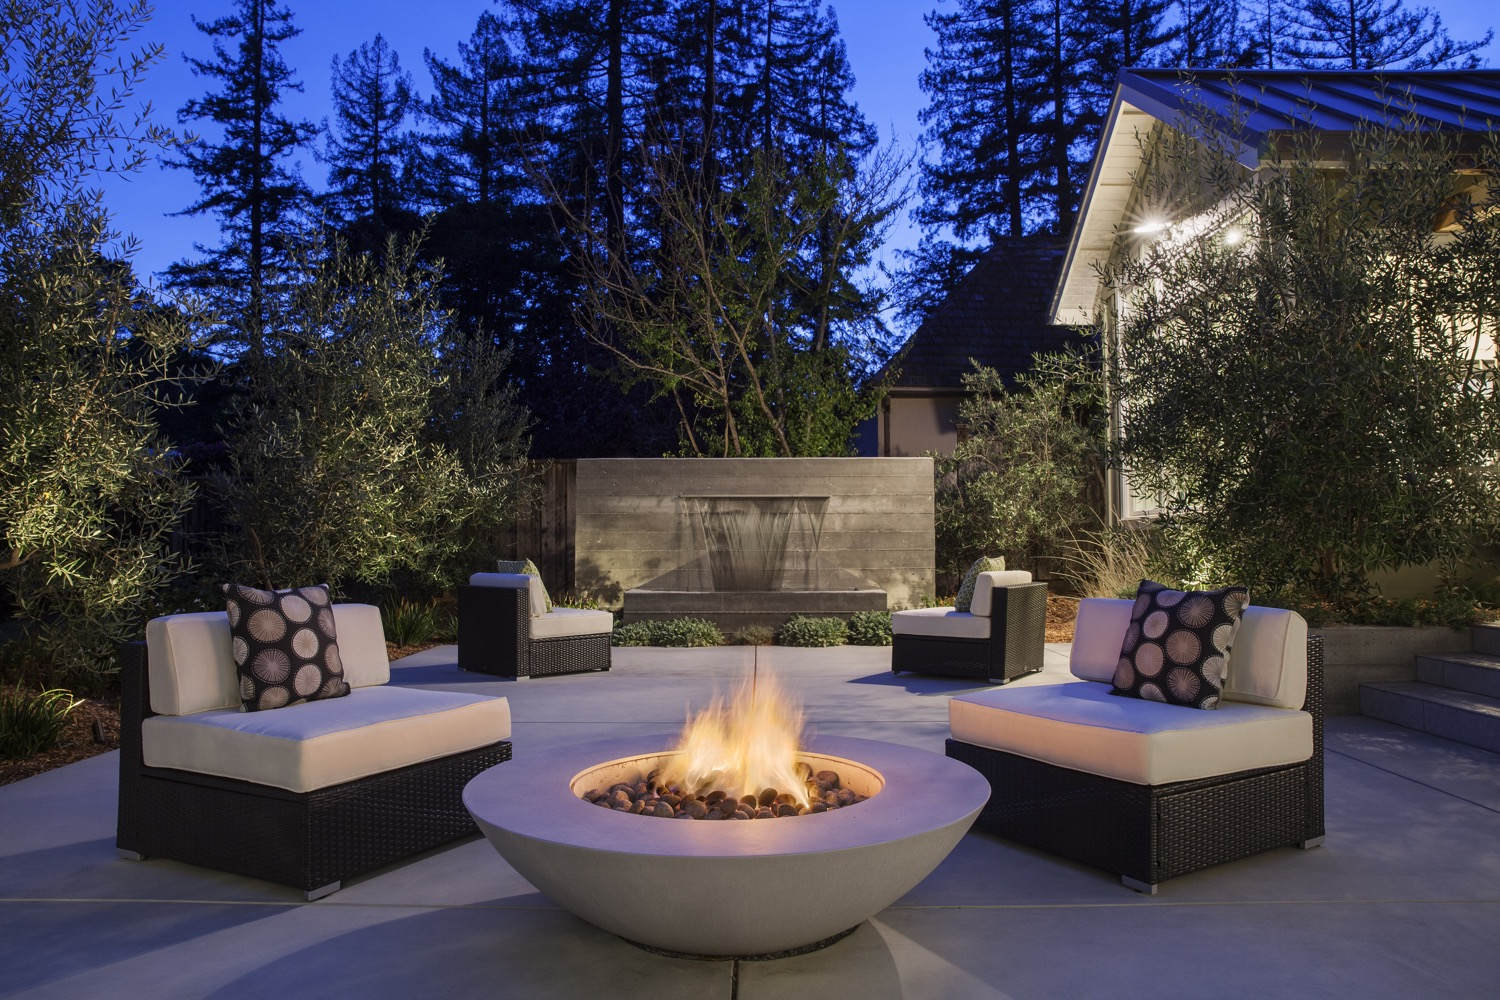 The firepit provides warmth and the fountain provides the calming sound of water. The firepit is finished in a very smooth concrete, while the fountain provides contrast in board-formed concrete.